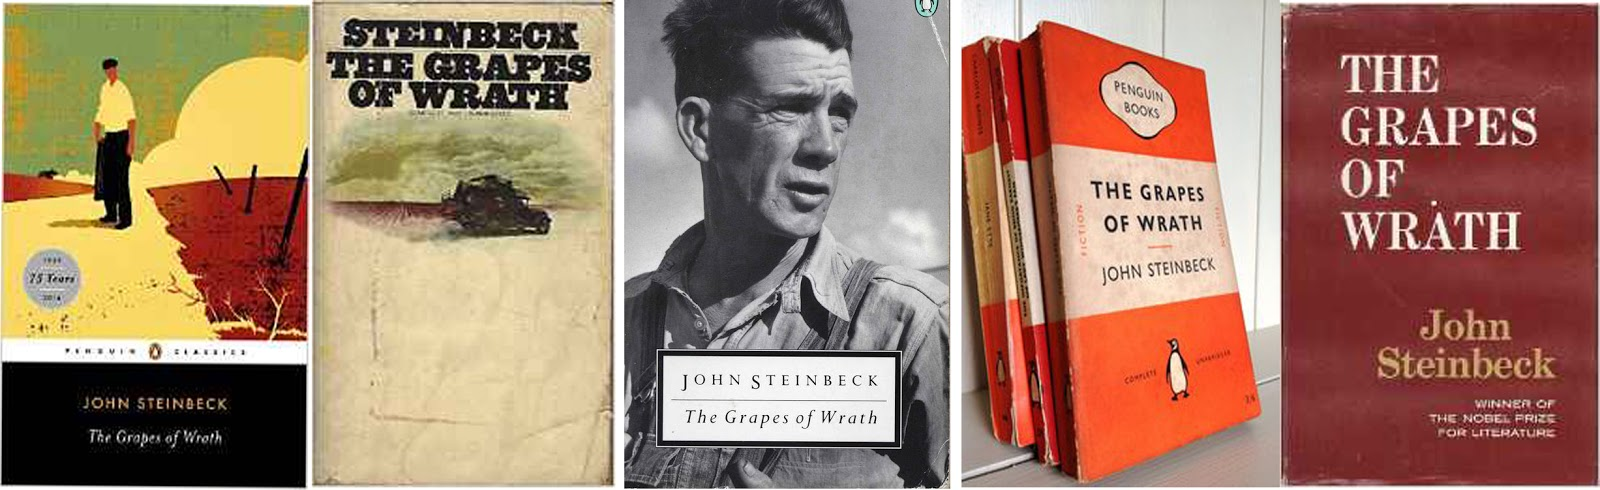 after the grapes of wrath essays on john steinbeck Item Preview